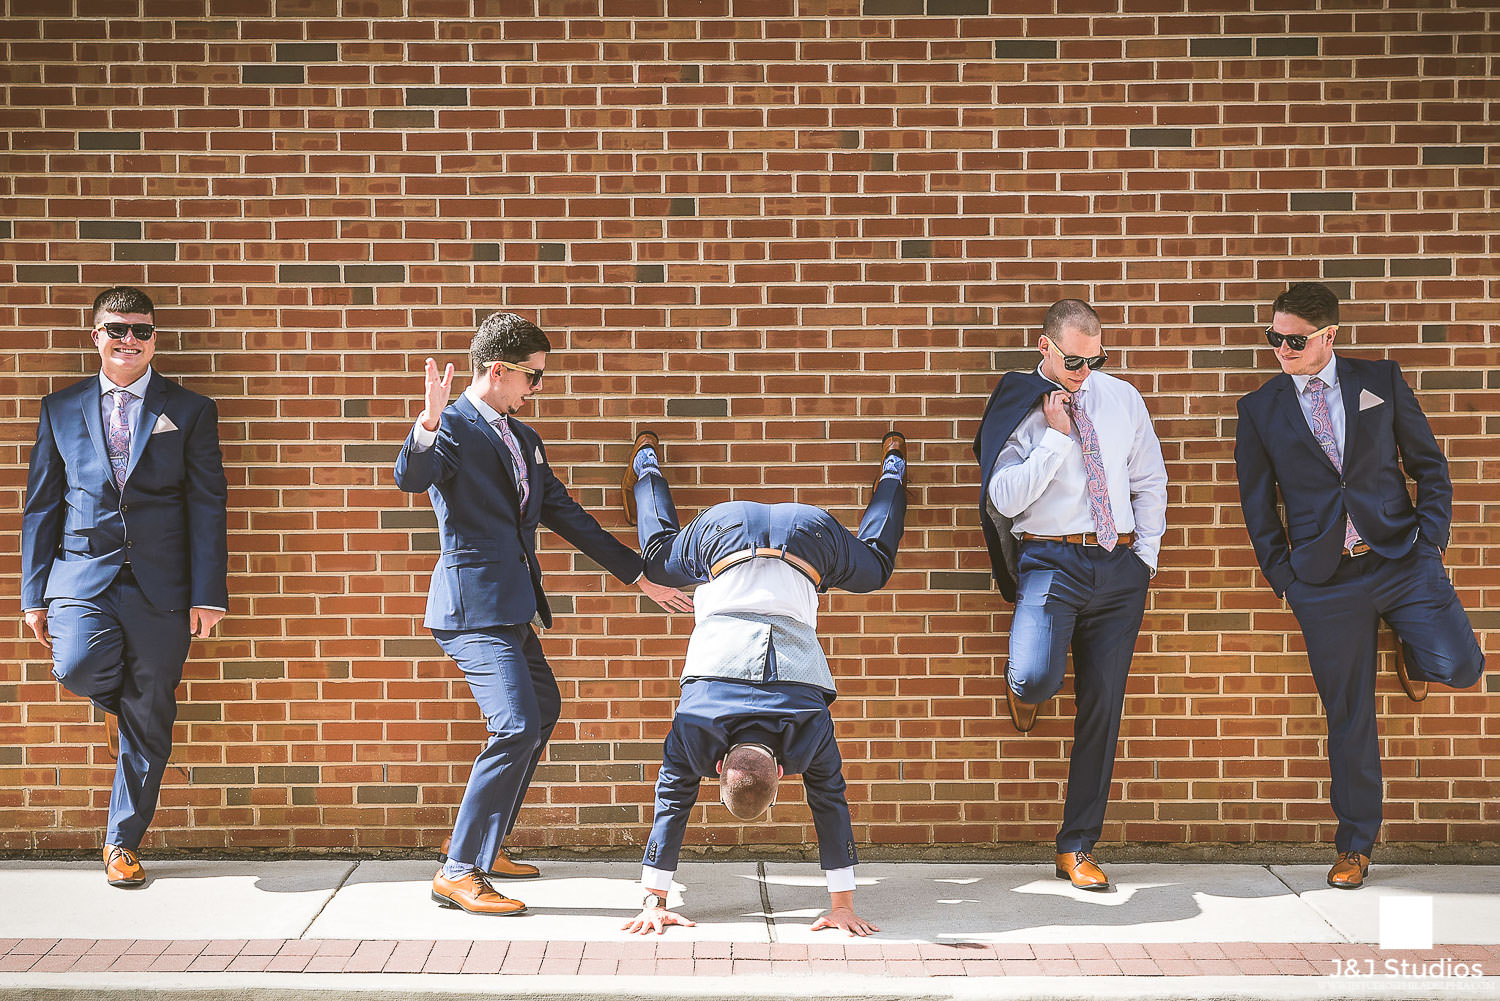 playful-groomsmen-funny-groomsmen-wedding-guys